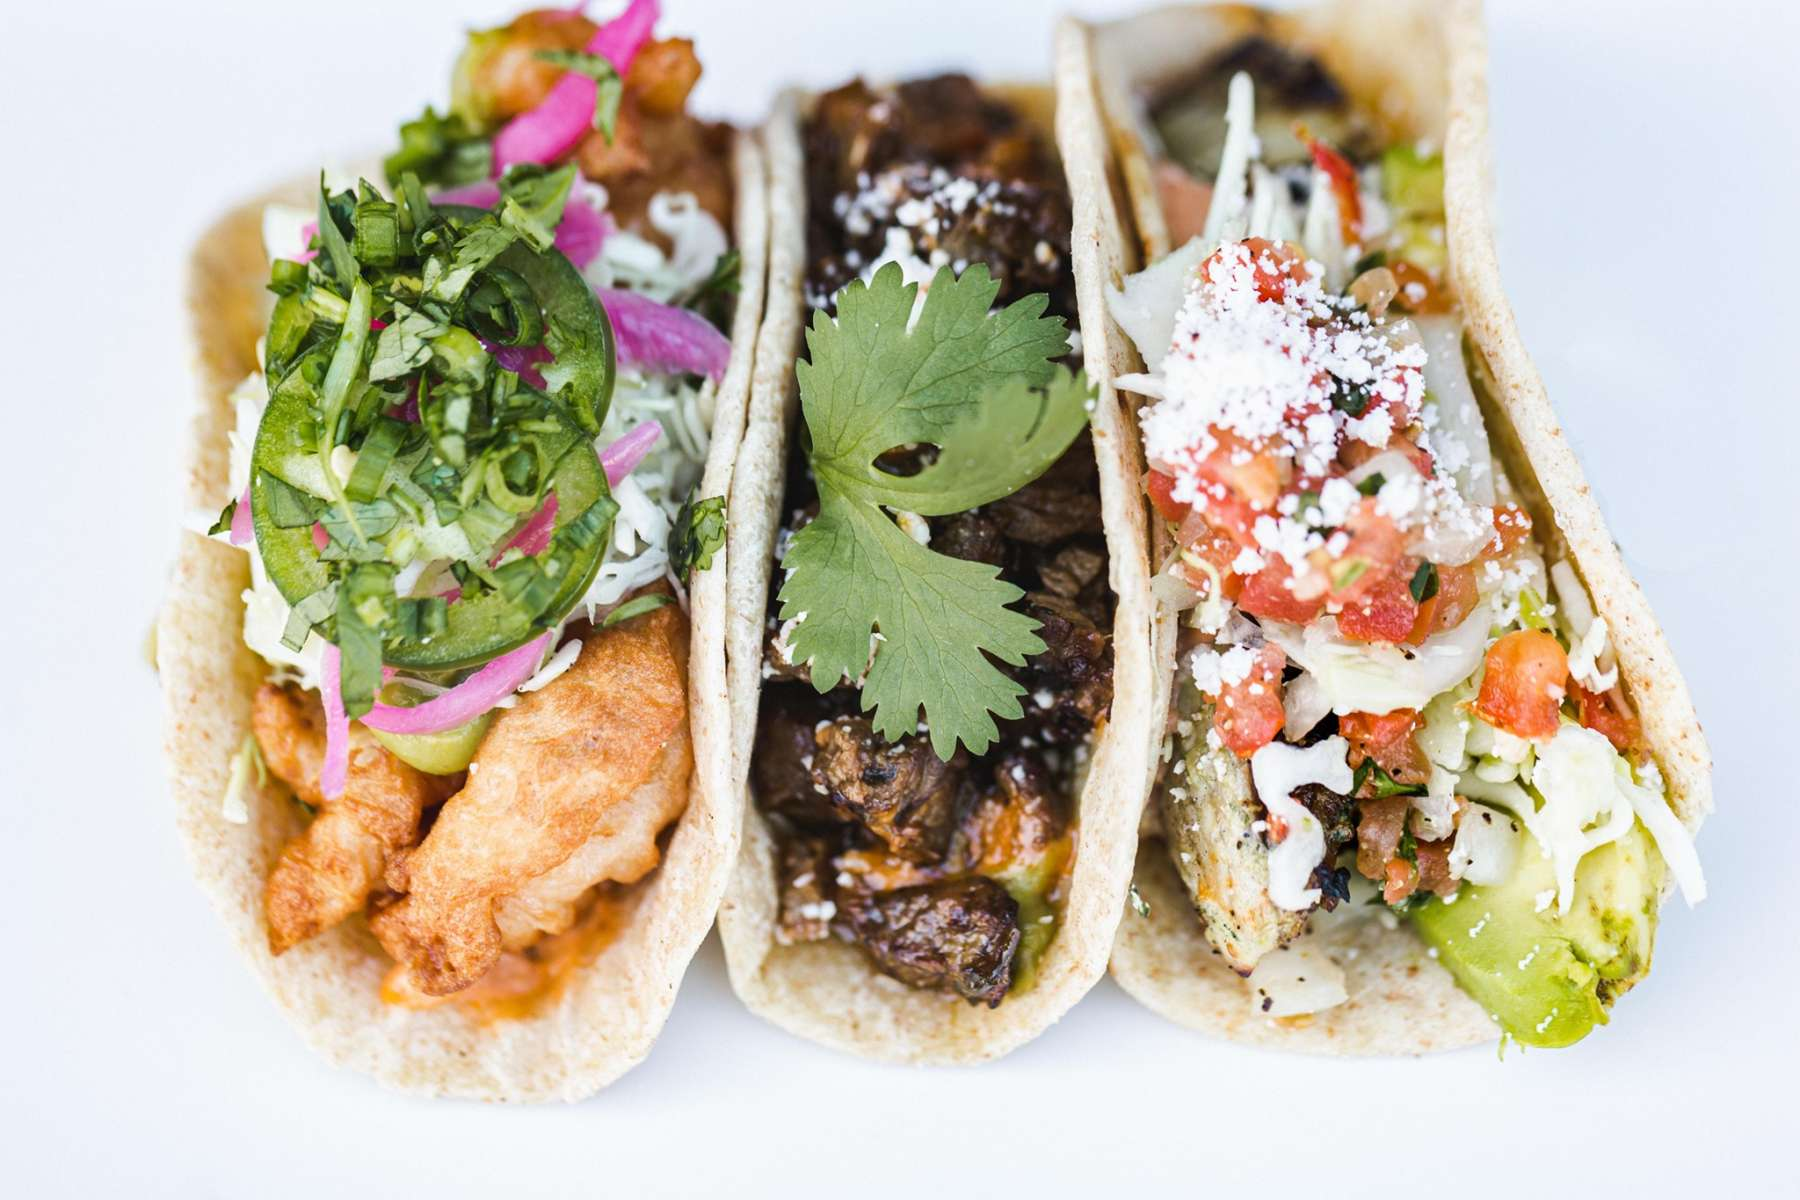 The Most Delicious Taco Places in Scottsdale Near You